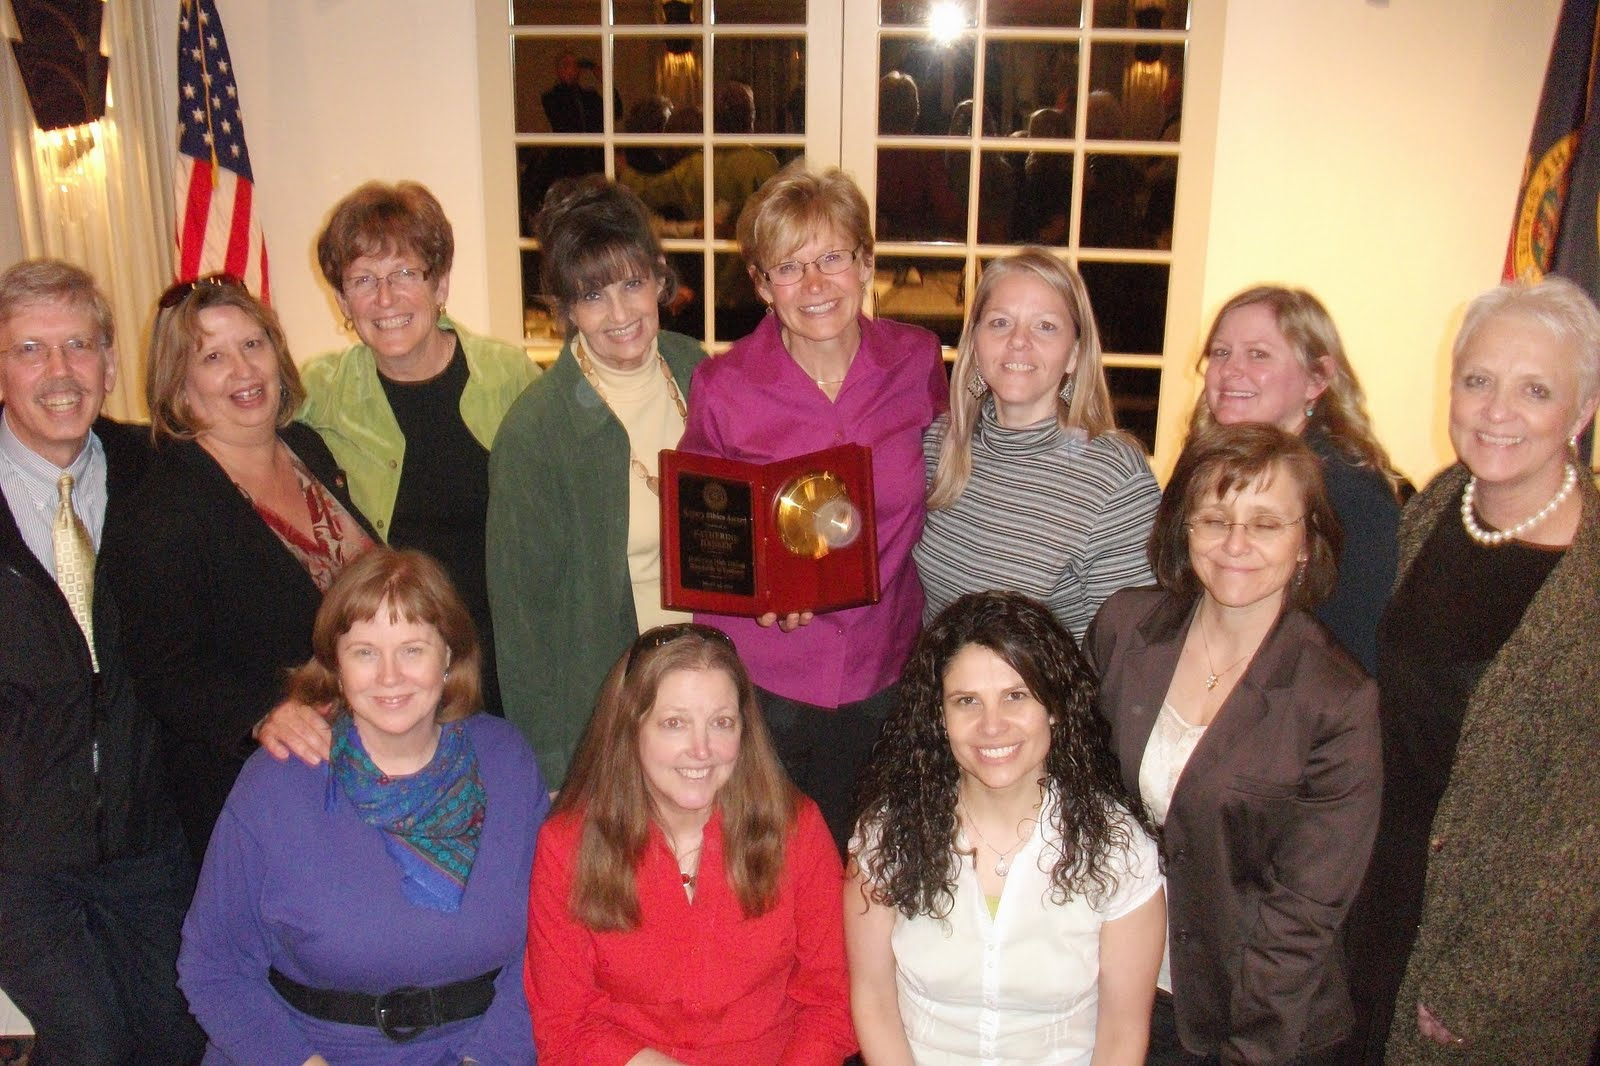 terry s rotary ramblings katherine hansen is recipient of katherine received the award in the presence of family and